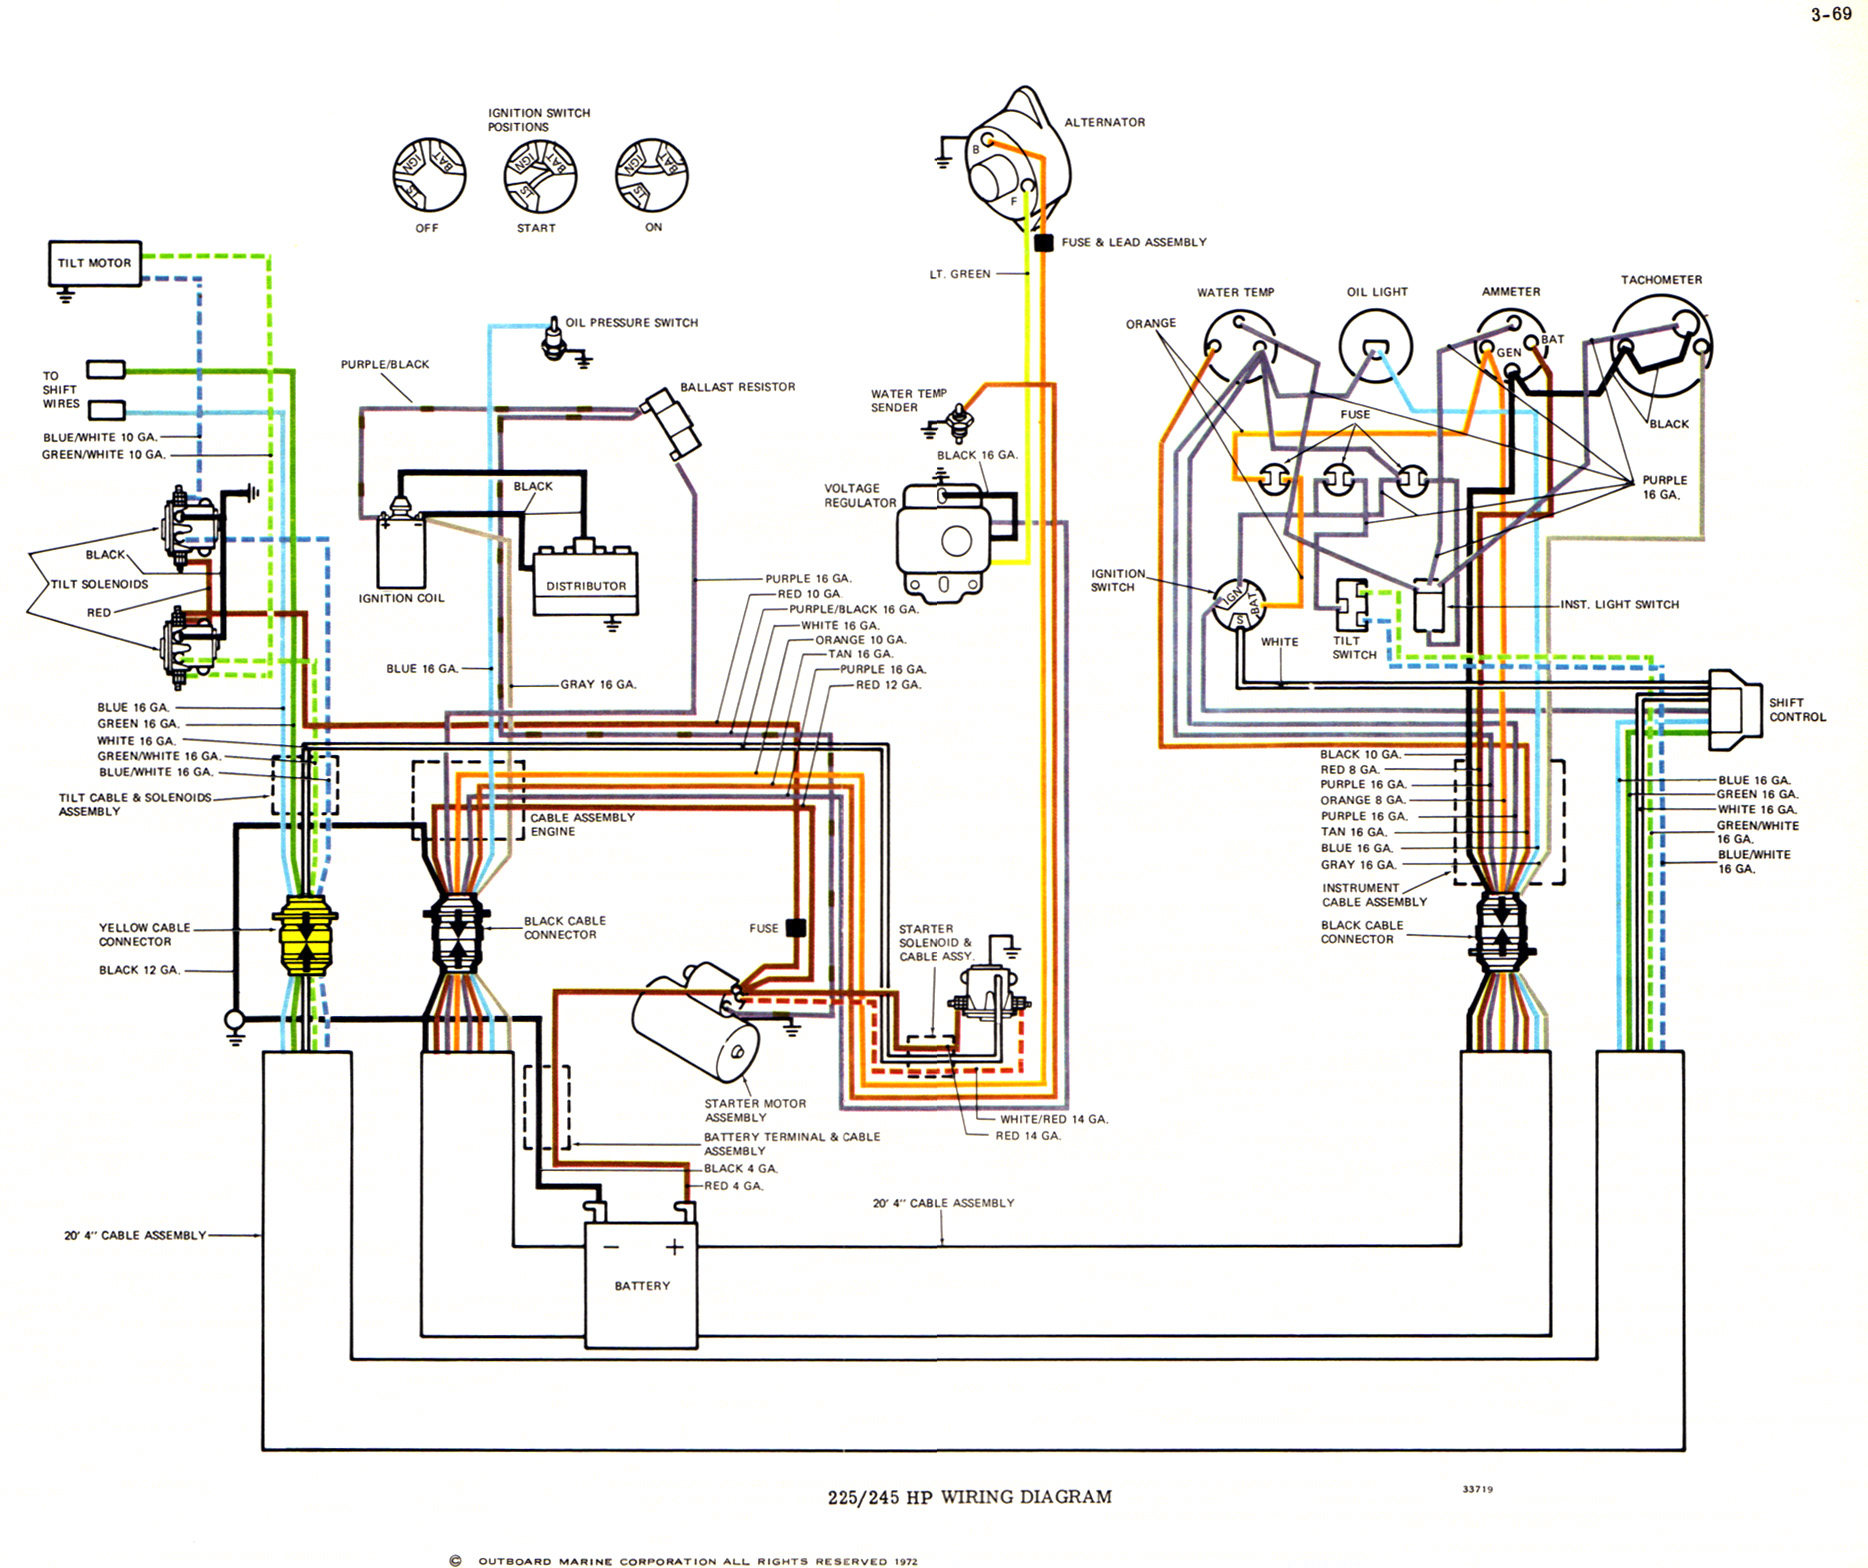 73_OMC_V8_all_big omc wiring diagram 1967 johnson 40 wiring diagram \u2022 wiring volvo penta starter motor wiring diagram at reclaimingppi.co